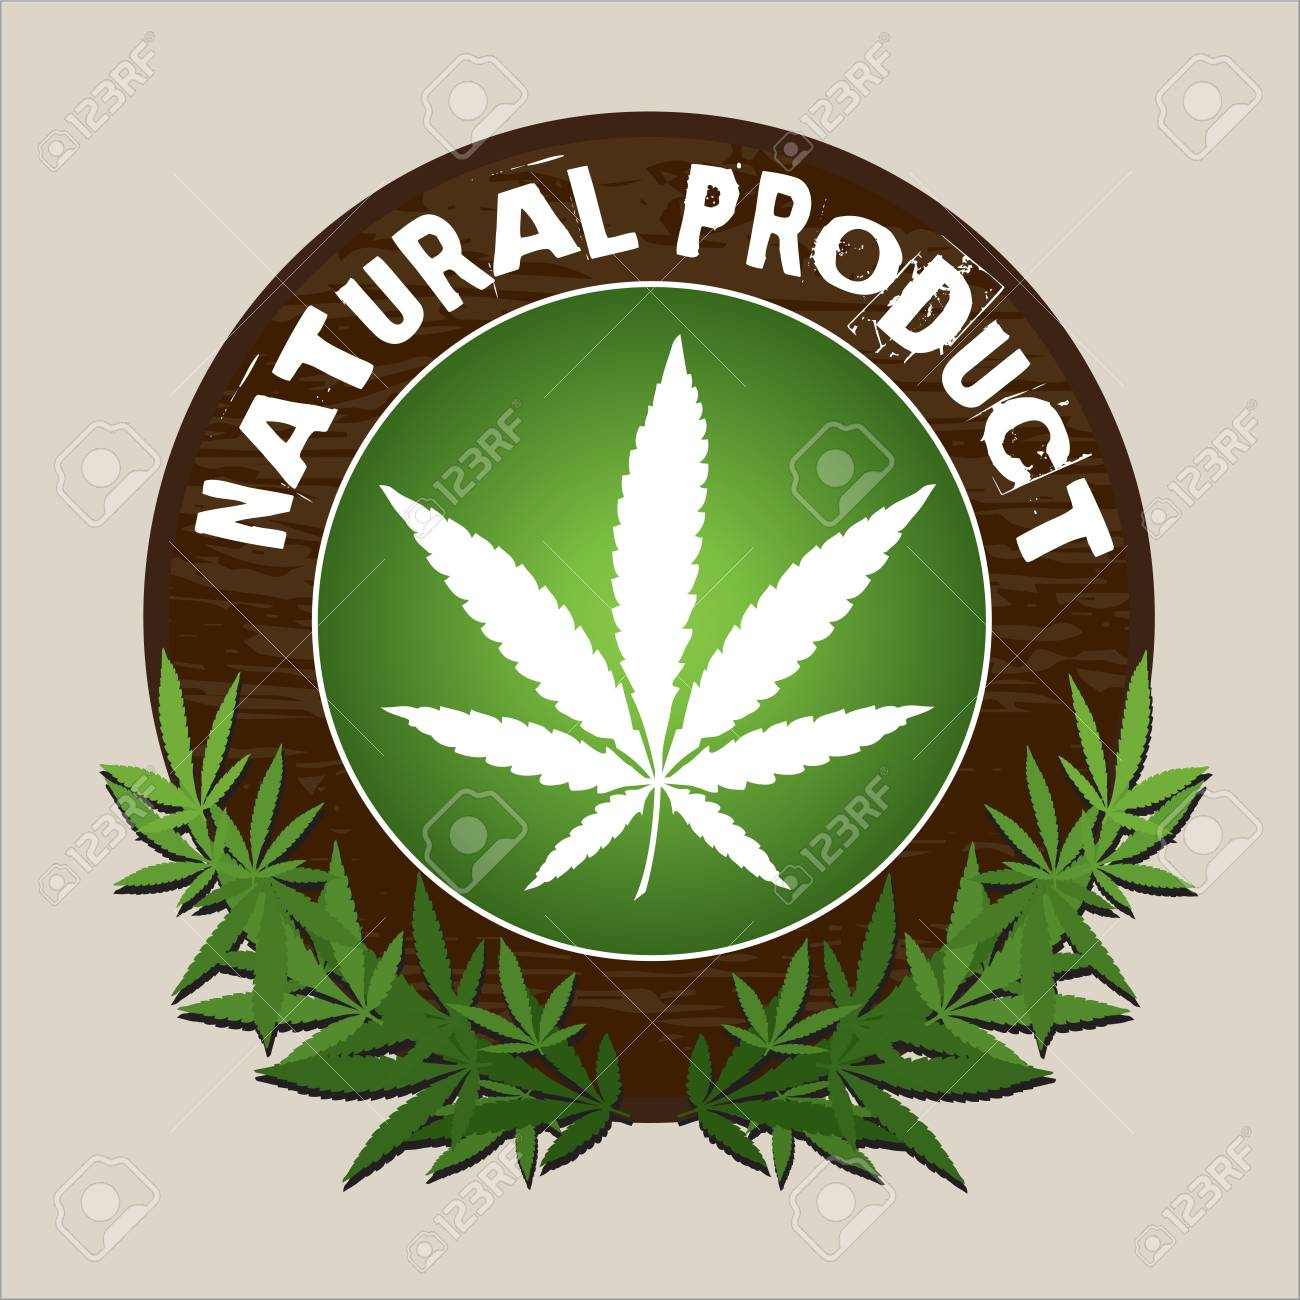 natural product marijuana vector label with wood round background,